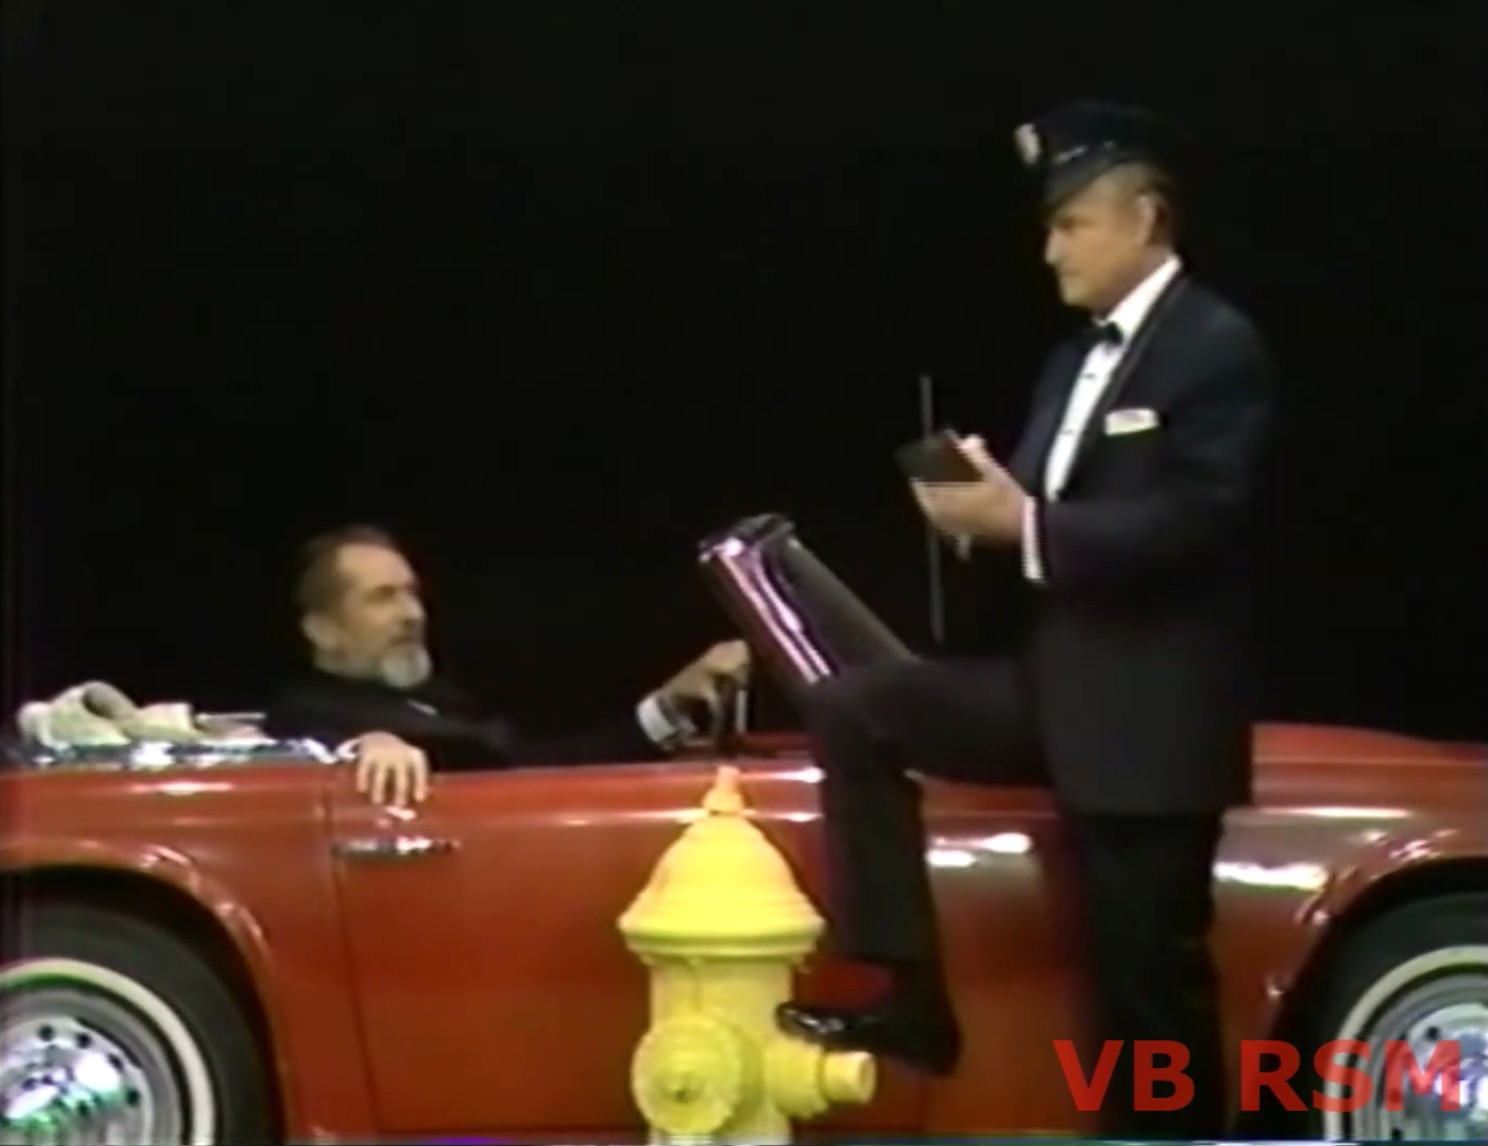 One minute skit, The Nasty Cop - with Vincent Price, Red Skelton, a parking ticket and a fire hydrant